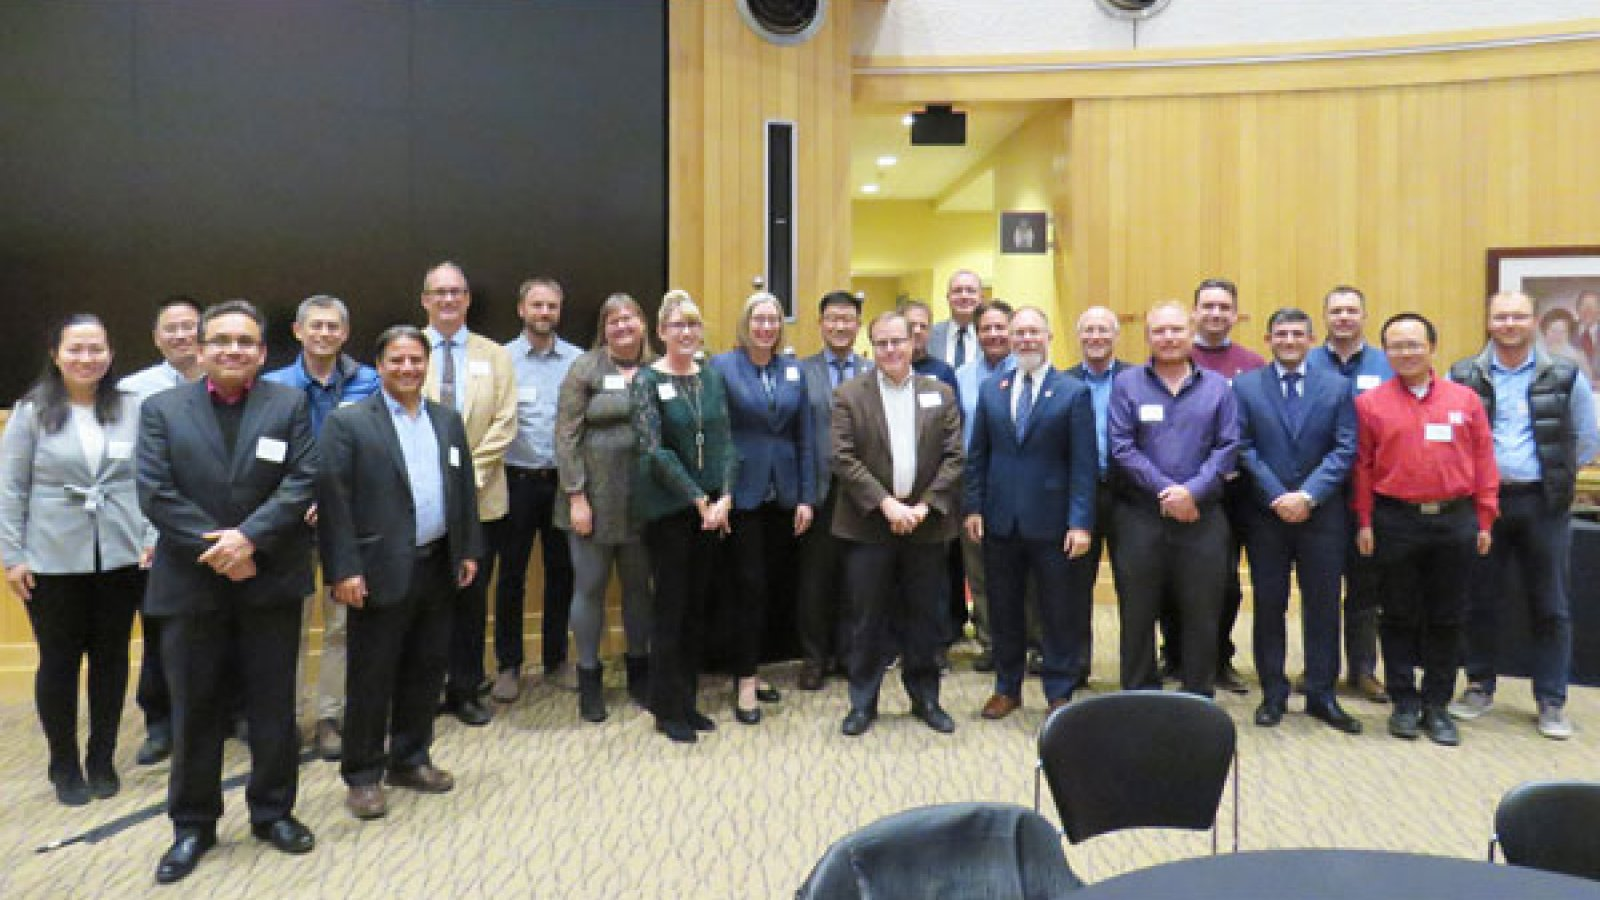 The College of Engineering honored 38 faculty for their good works during the 2018 Research Celebration, held Nov. 1 at the Van Brunt Center.